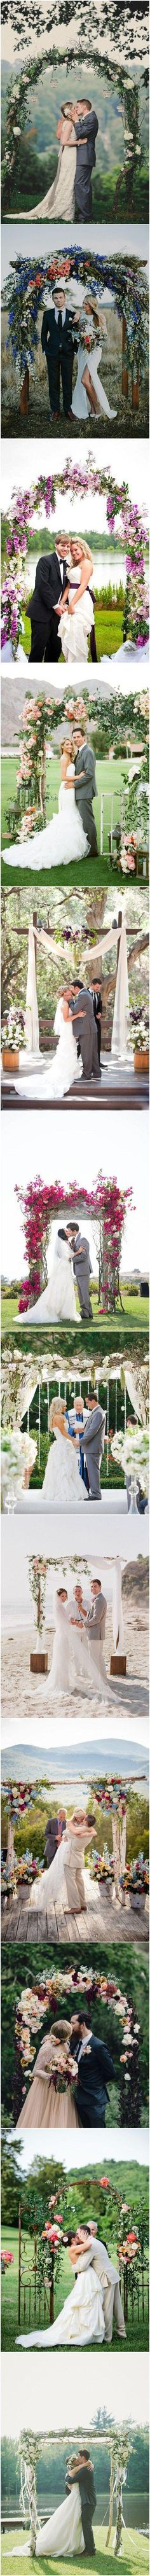 Rustic Wedding Ideas - 26 Floral Wedding Arches Decorating Ideas